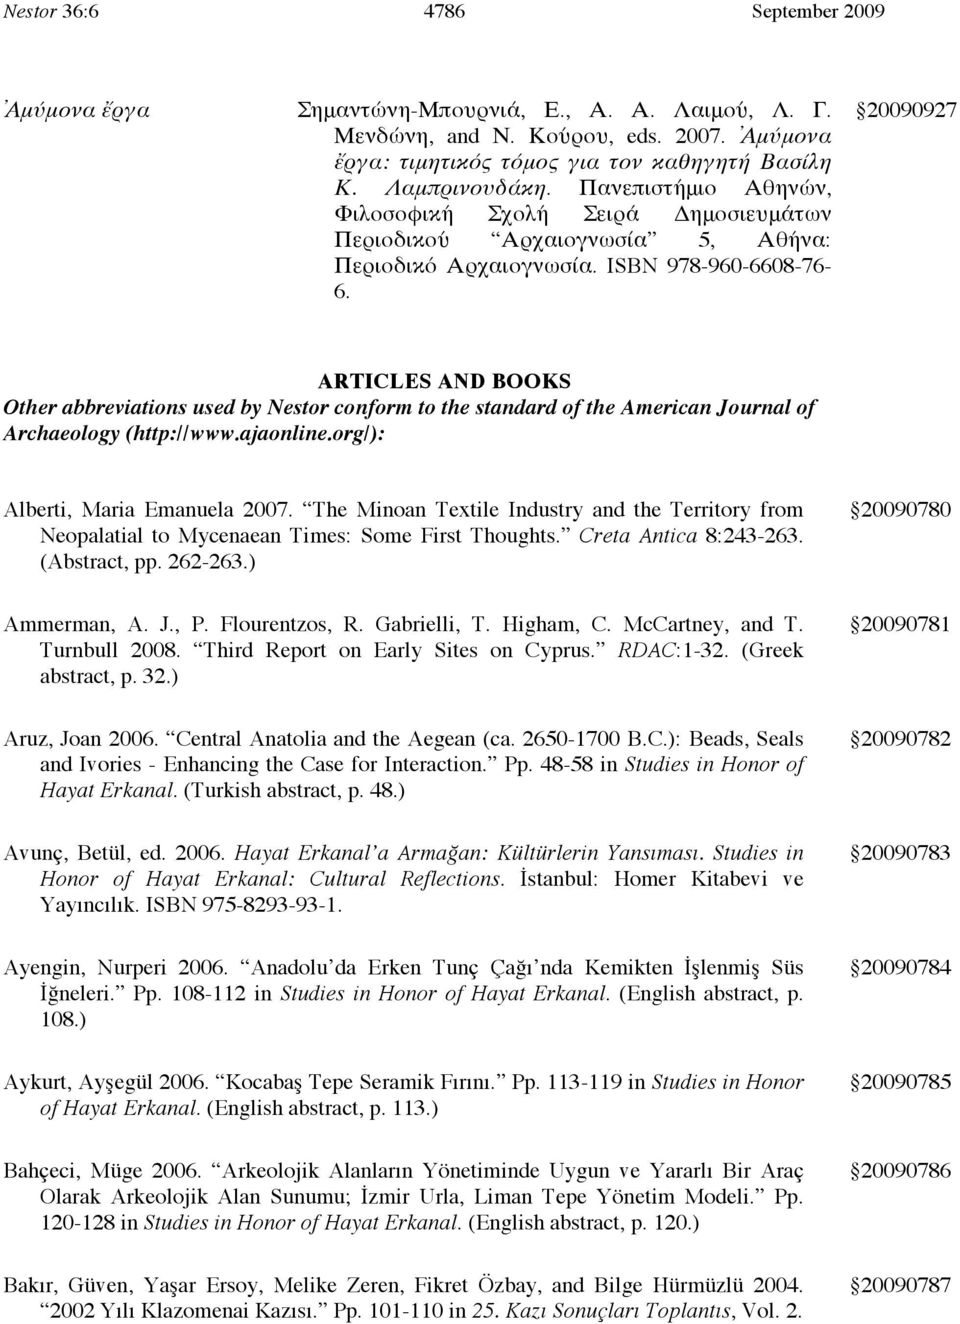 20090927 ARTICLES AND BOOKS Other abbreviations used by Nestor conform to the standard of the American Journal of Archaeology (http://www.ajaonline.org/): Alberti, Maria Emanuela 2007.